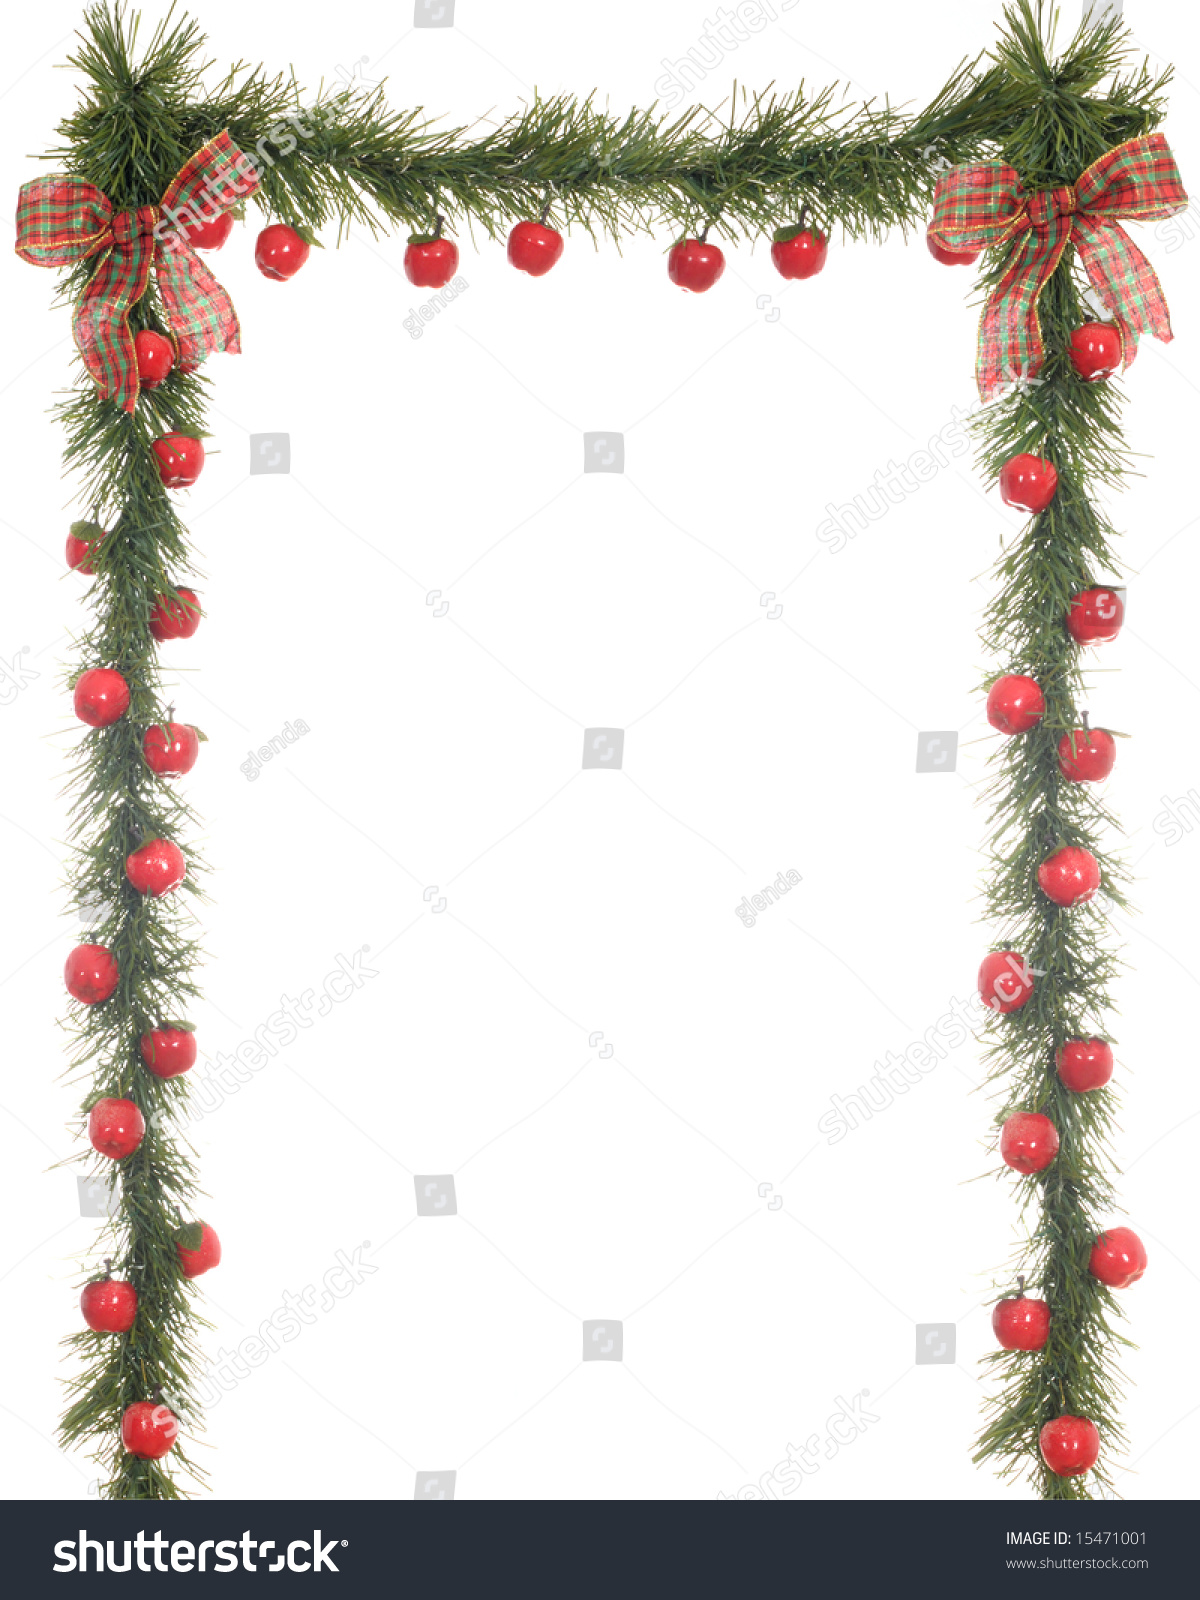 3sided Christmas Border Composed Evergreens Apples Stock Photo ...